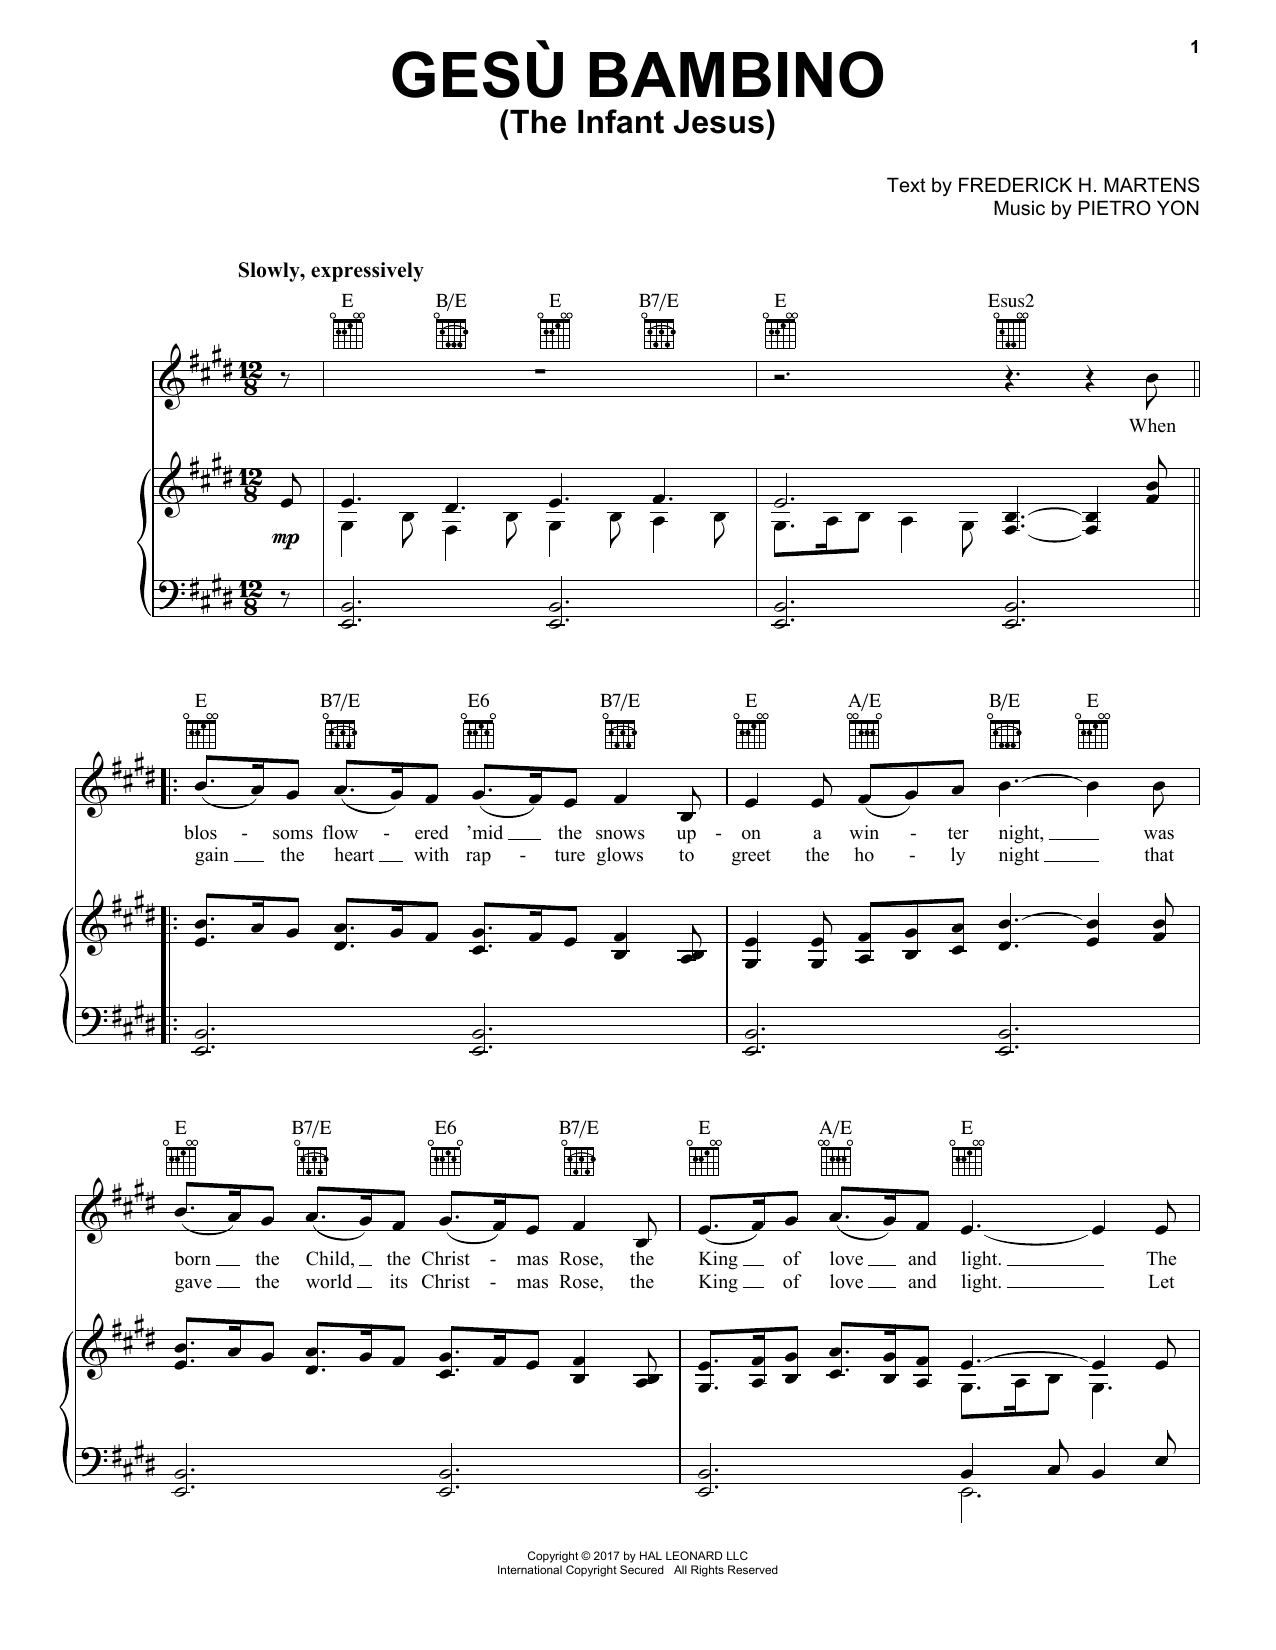 Frederick H. Martens Gesu Bambino (The Infant Jesus) sheet music notes and chords. Download Printable PDF.